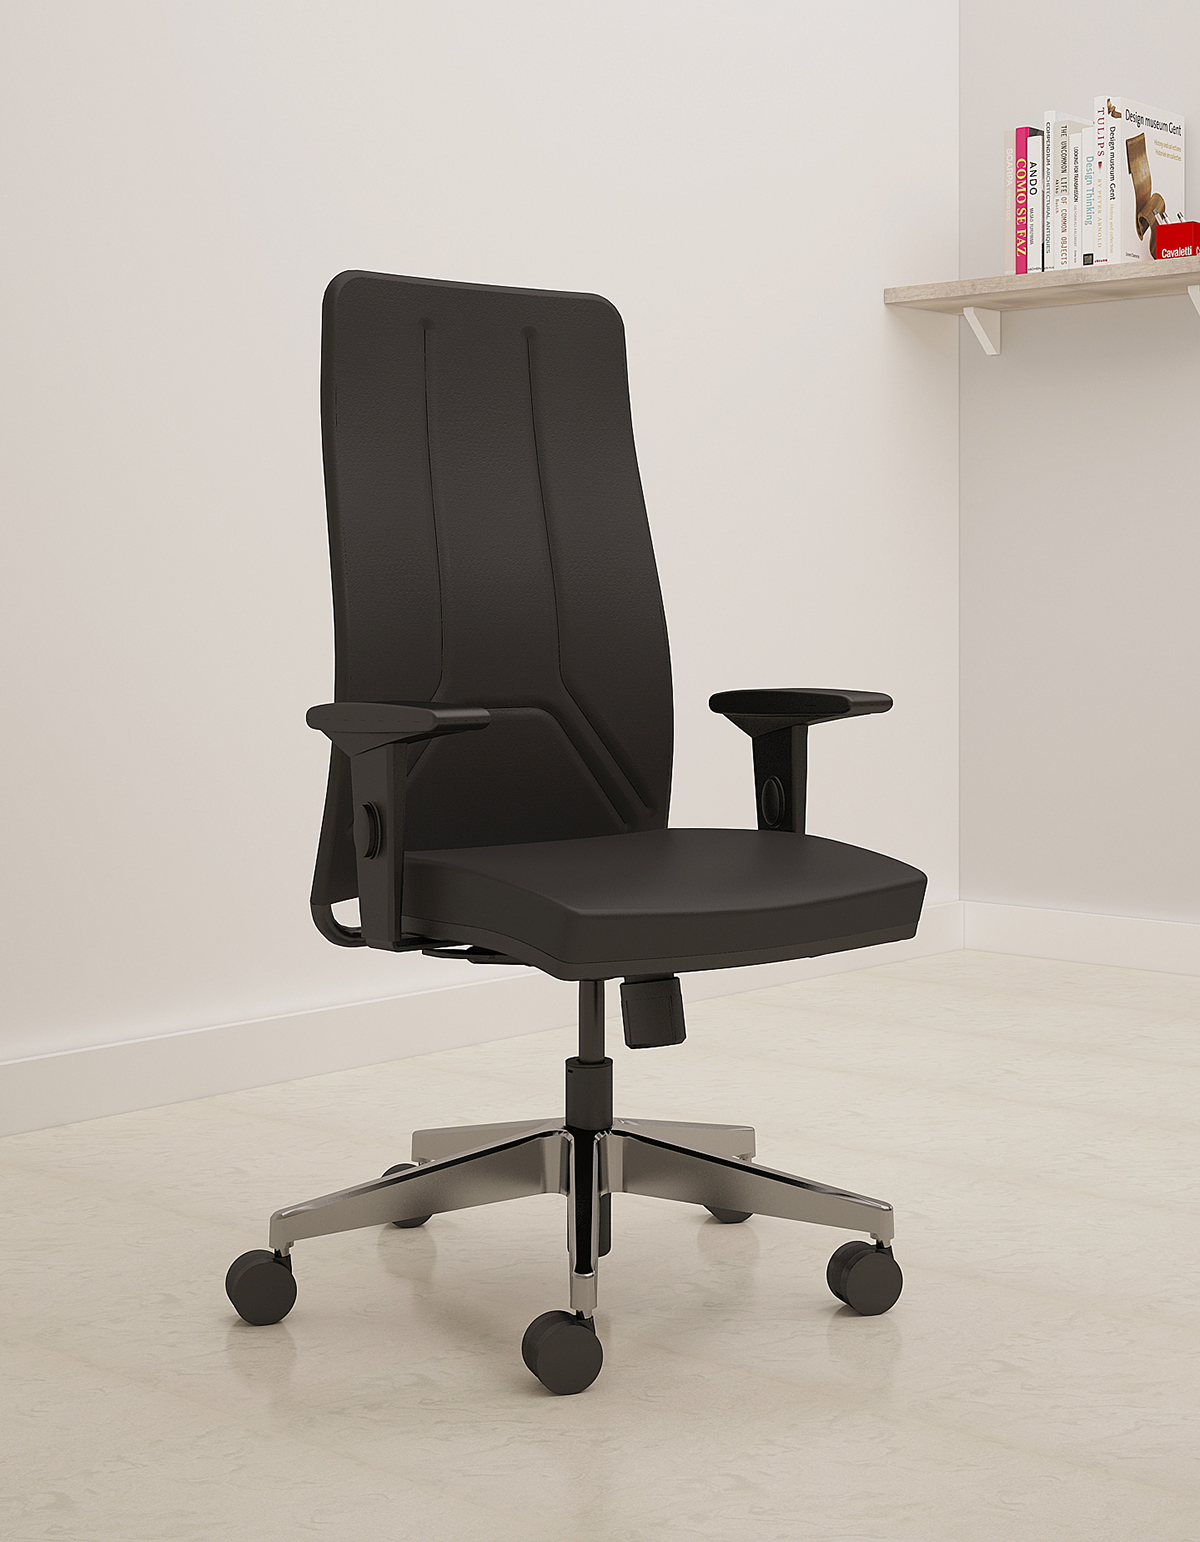 Office chair Interior